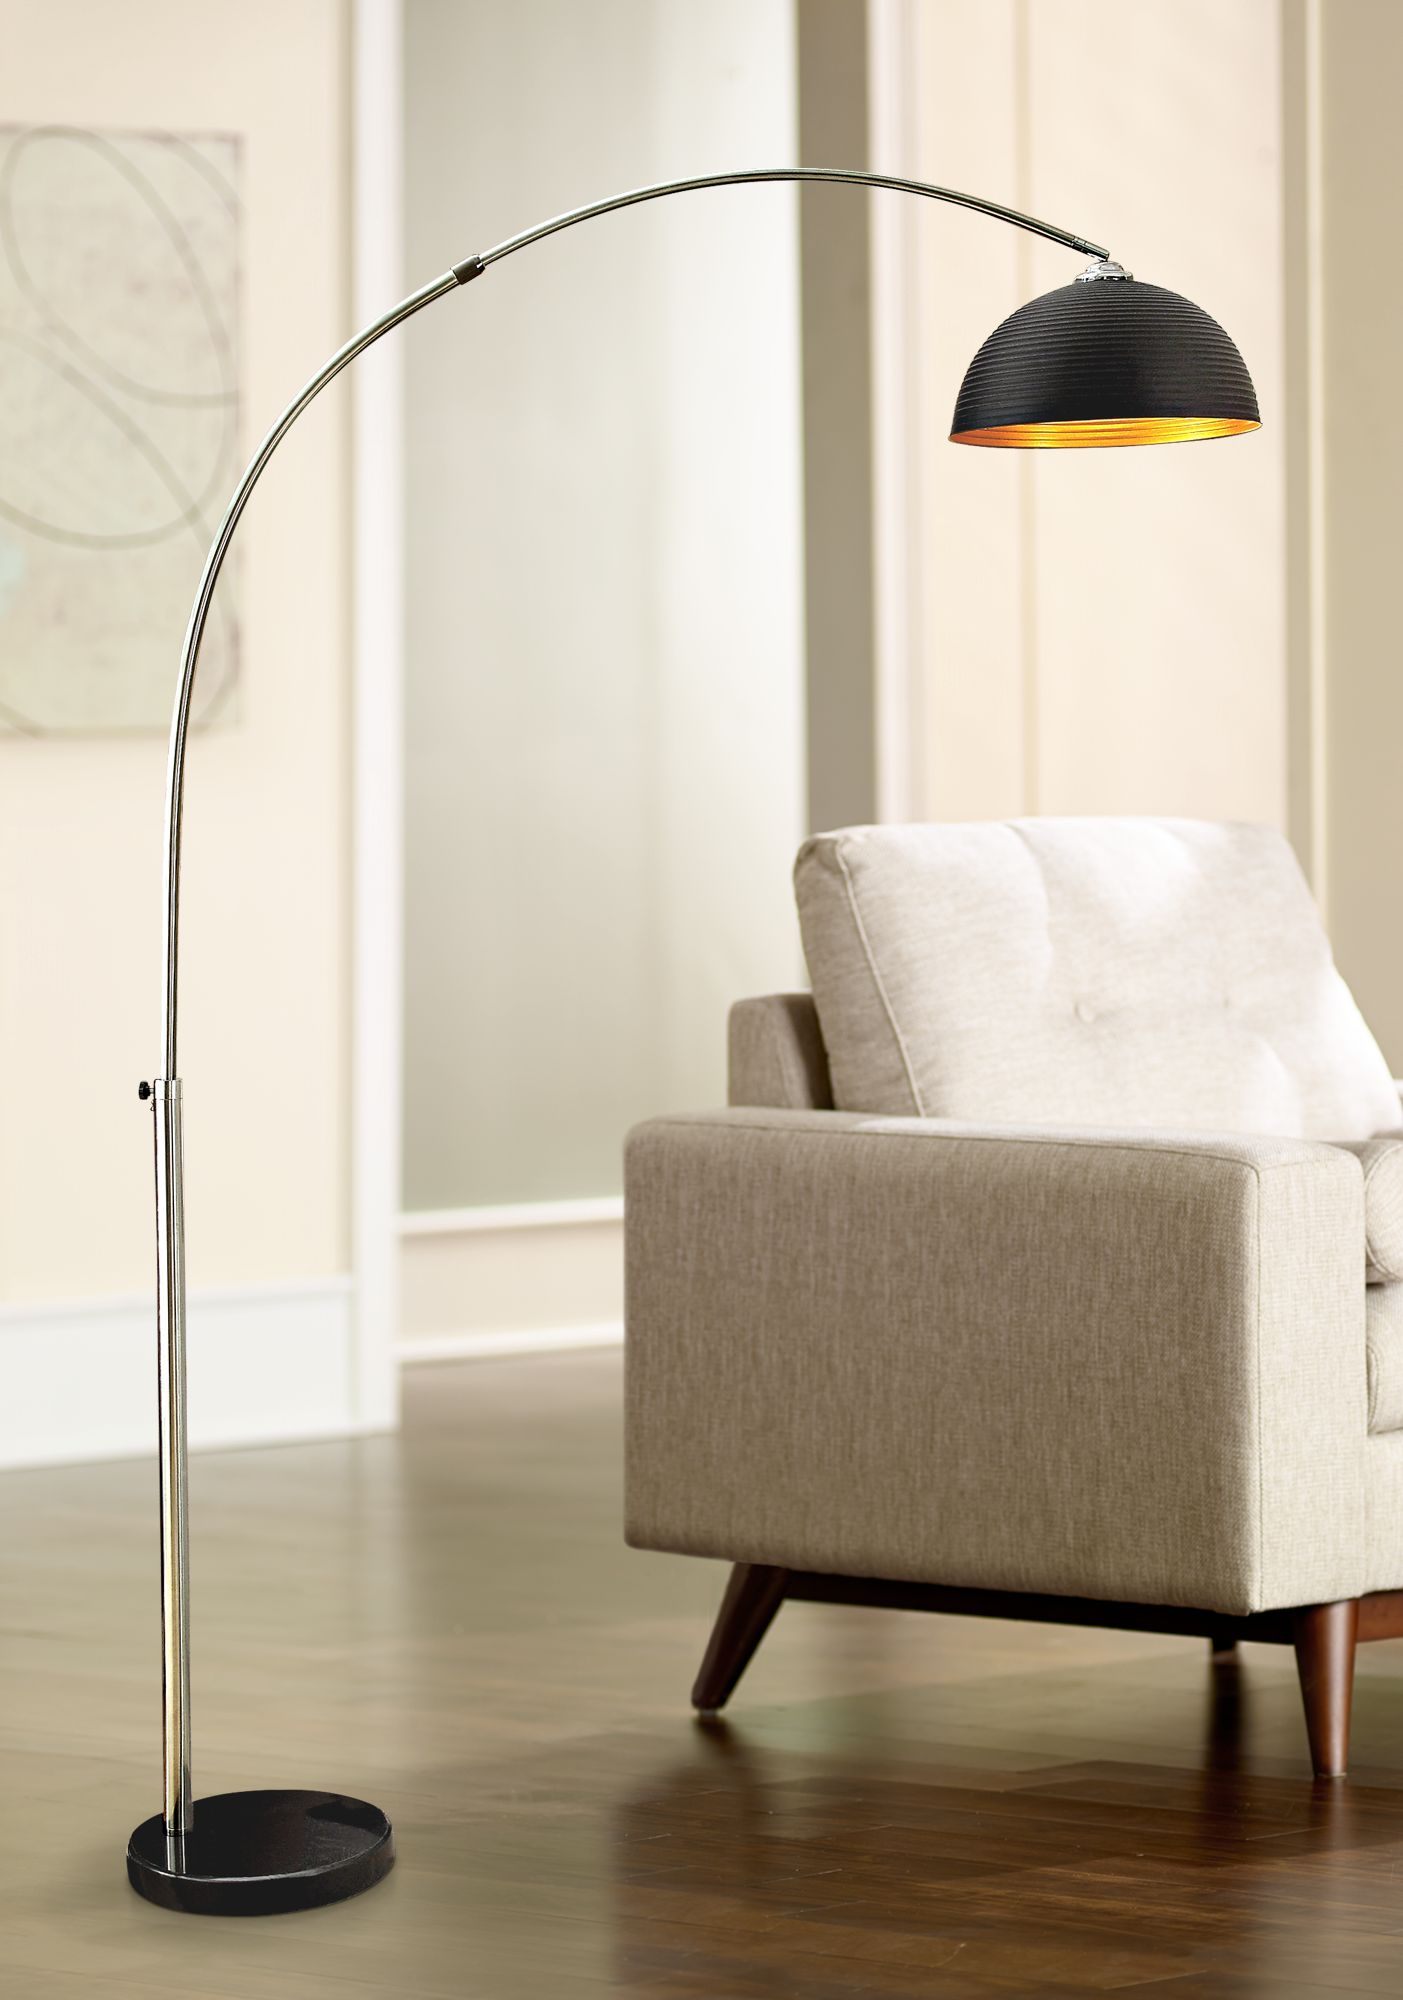 murrillo matte black sand chrome arc floor lamp - Arc Floor Lamps